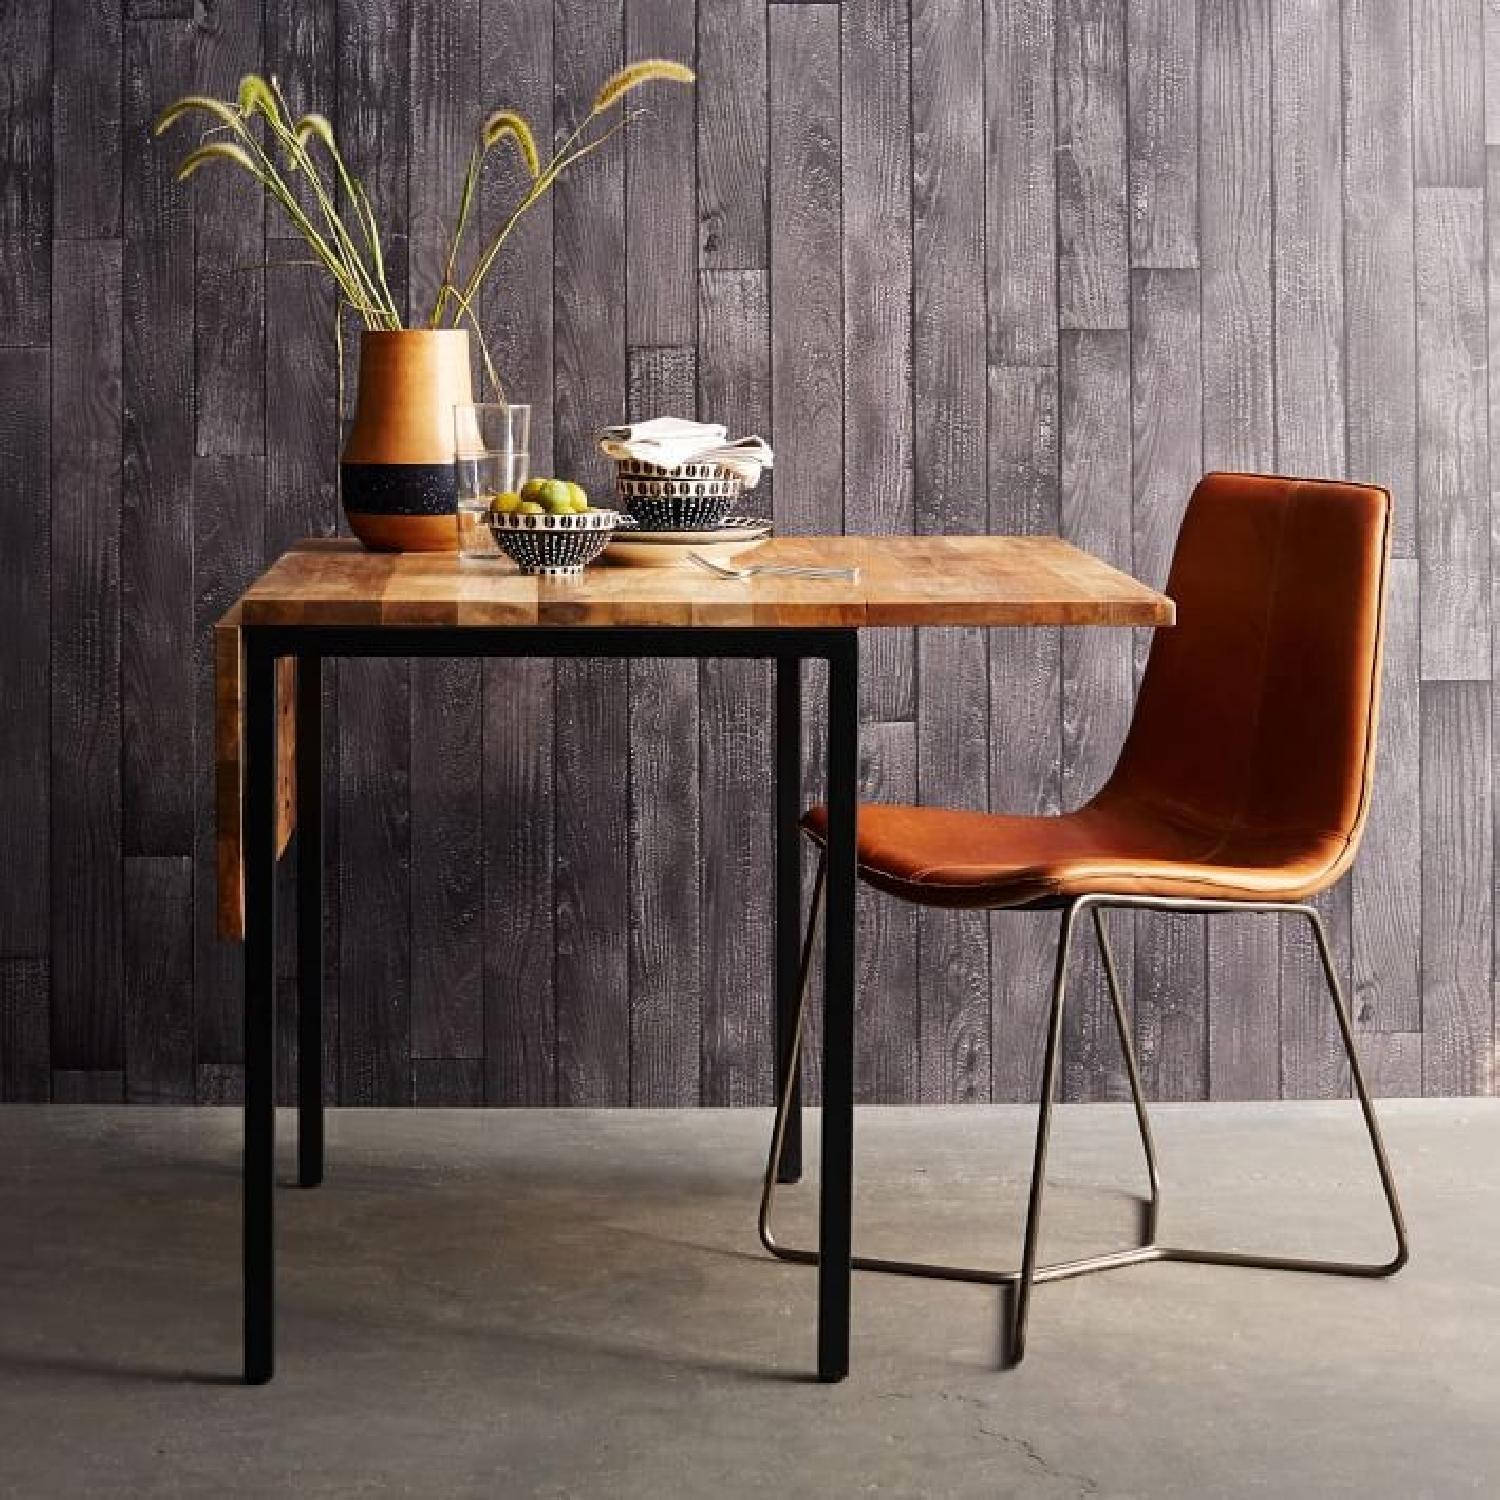 West Elm Box Frame Drop Leaf Dining Table AptDeco